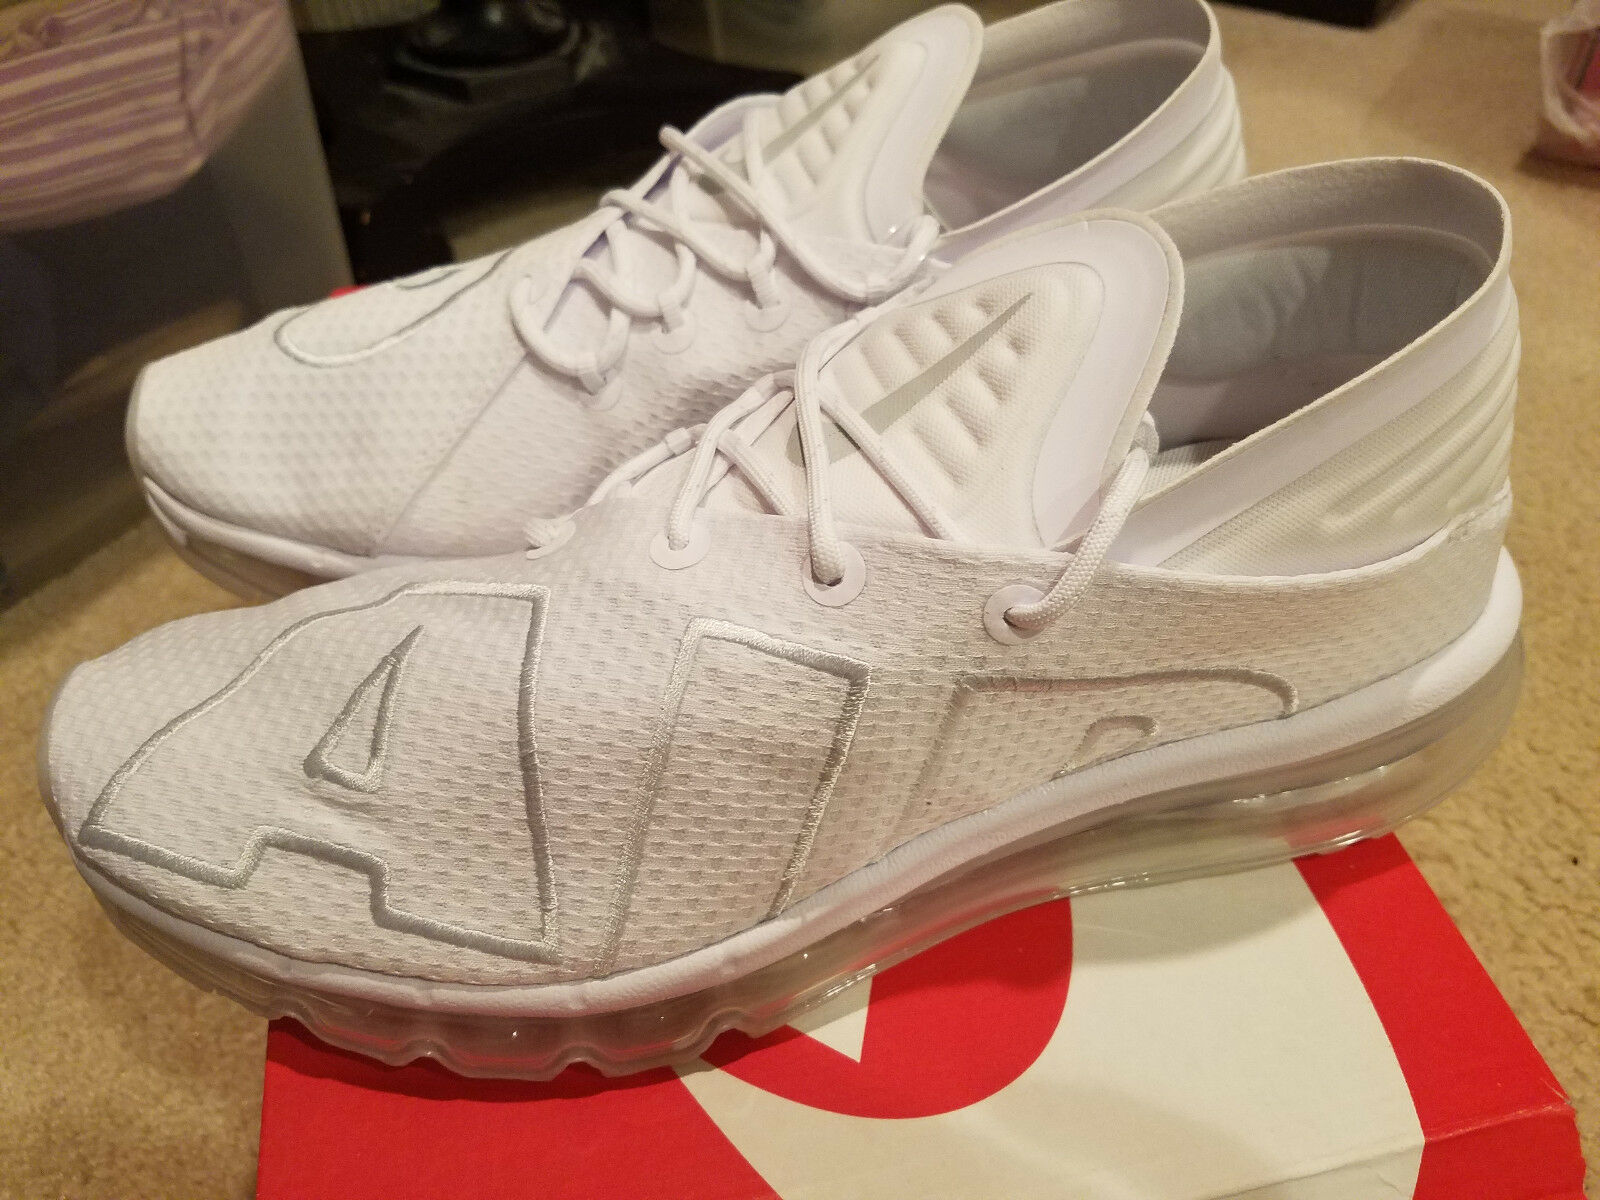 NEW Nike Air Max Flair All White Men's Size 10.5 Model